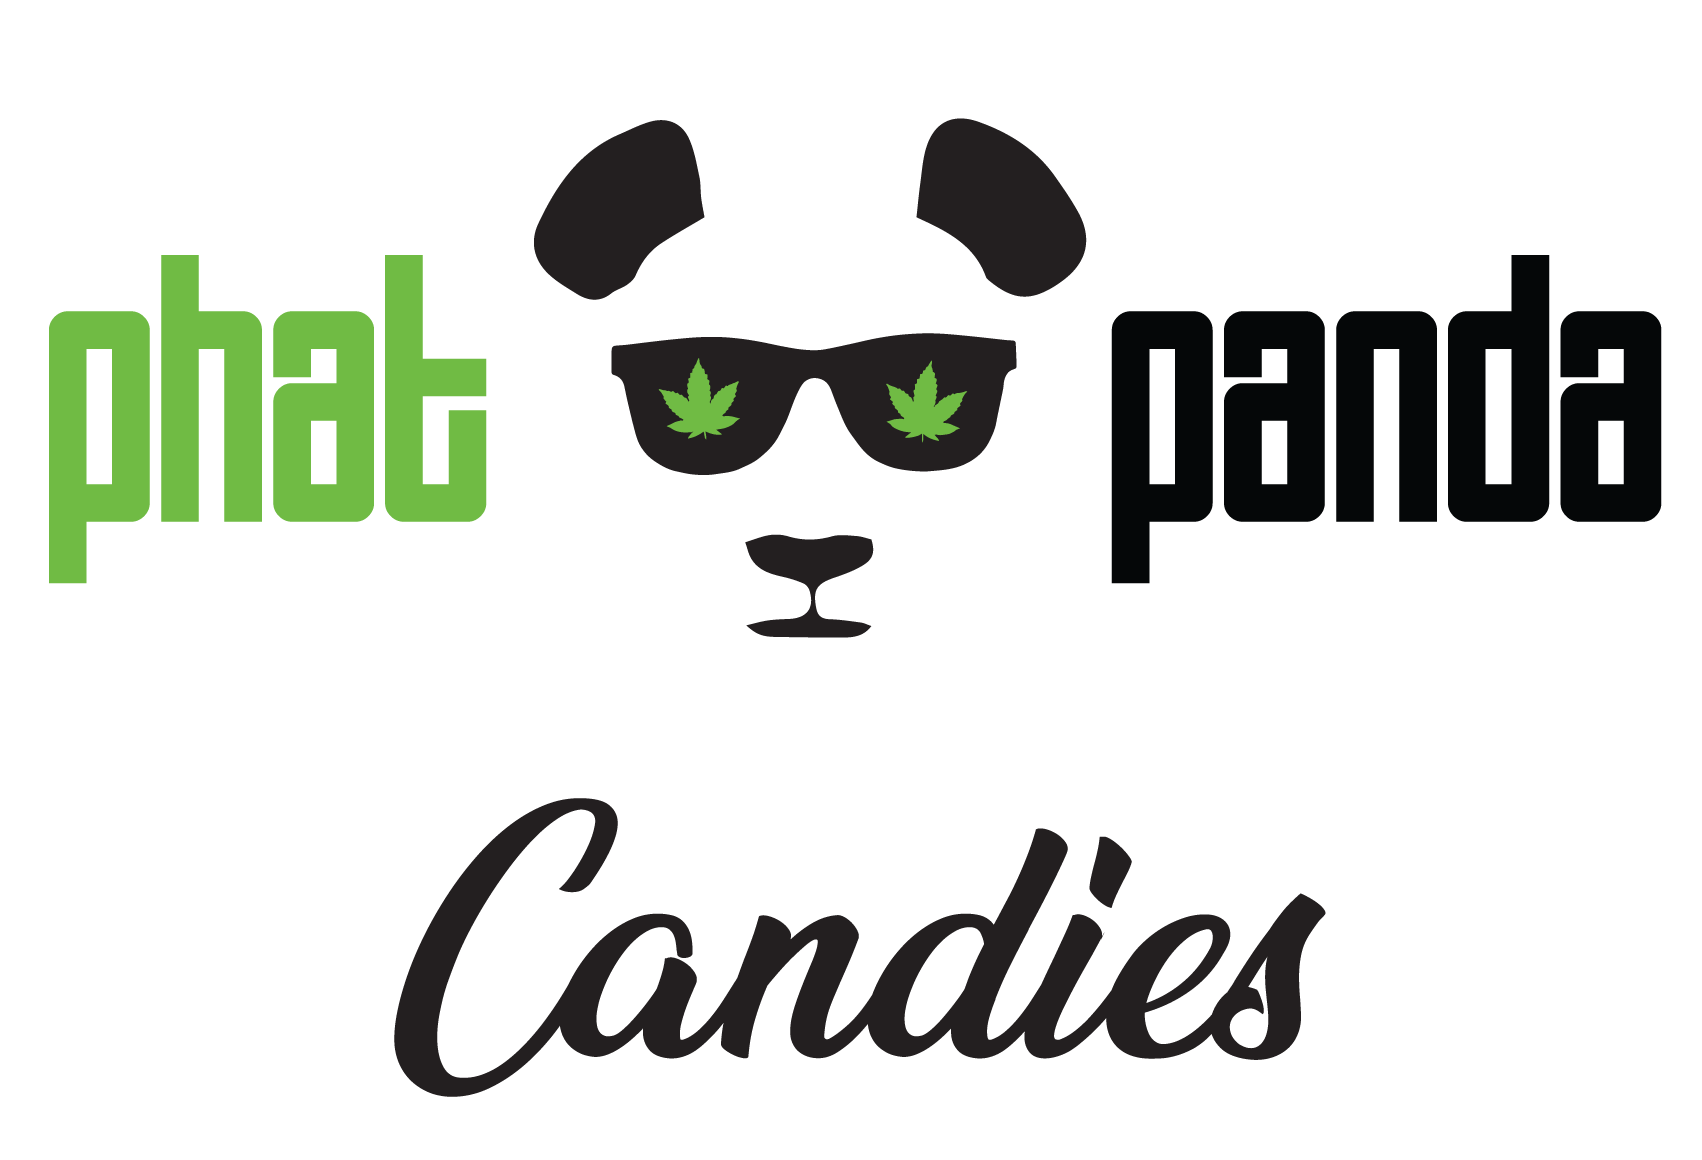 PP-Candies